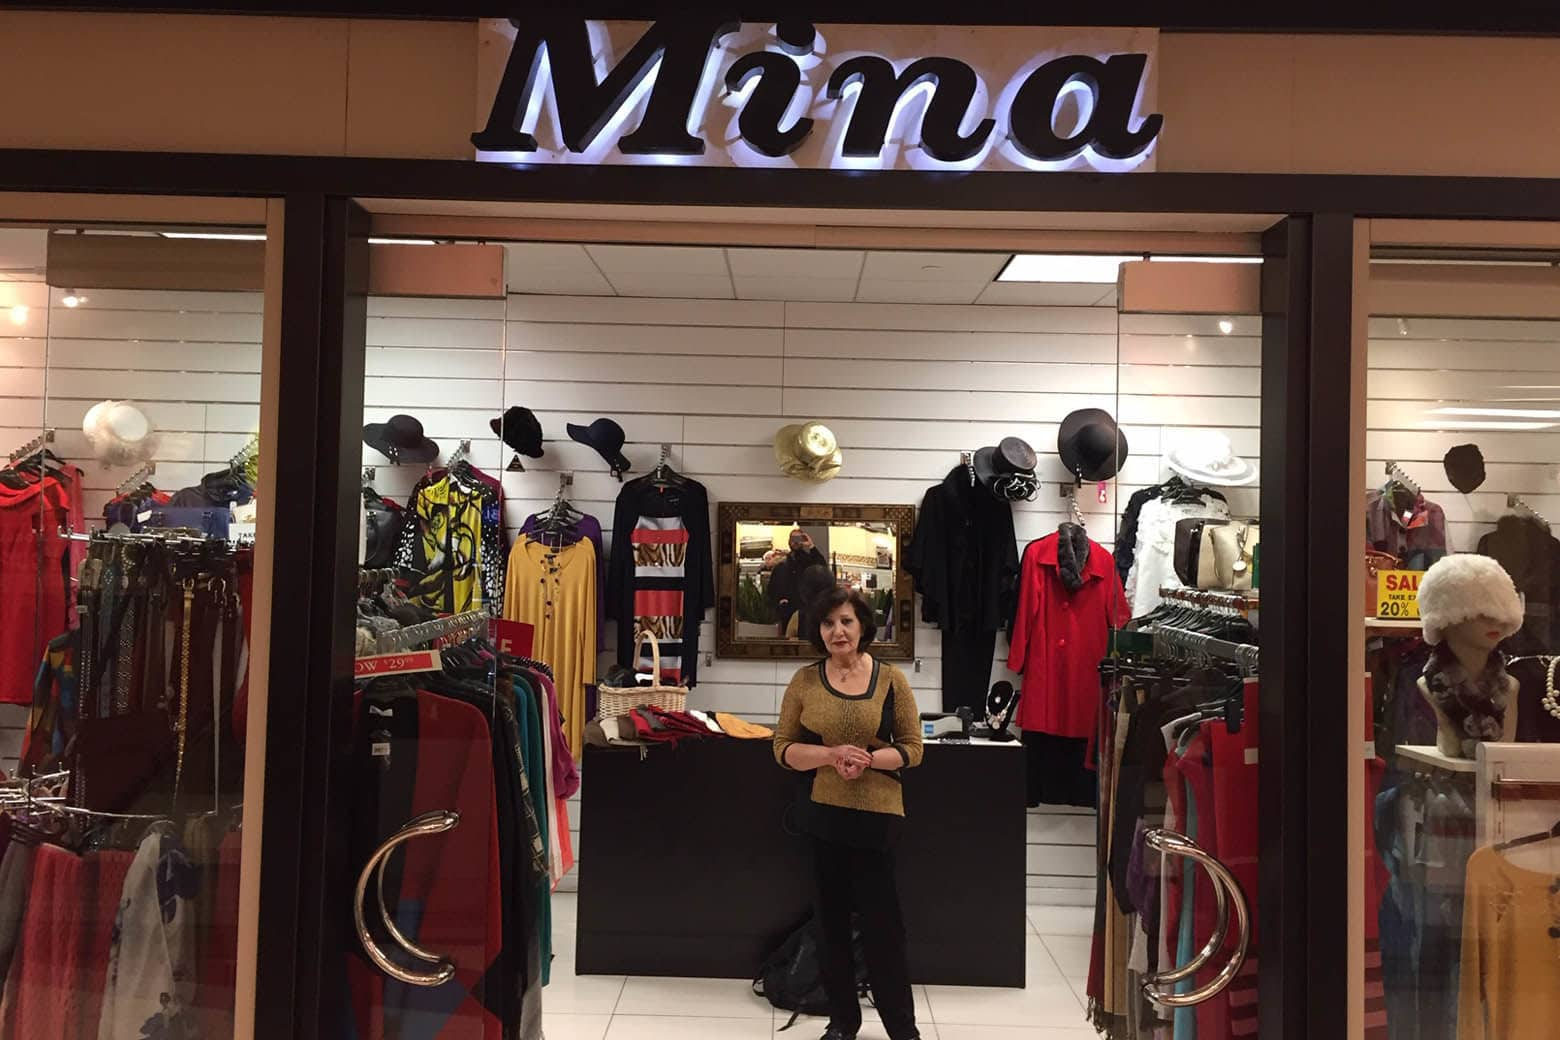 """I told my employee not to show up until I call them,"" said Mina Tamami, who operates Mina's Boutique with her husband. ""The past month, nothing. Nobody's here. It's like a ghost town."" (WTOP/John Domen)"